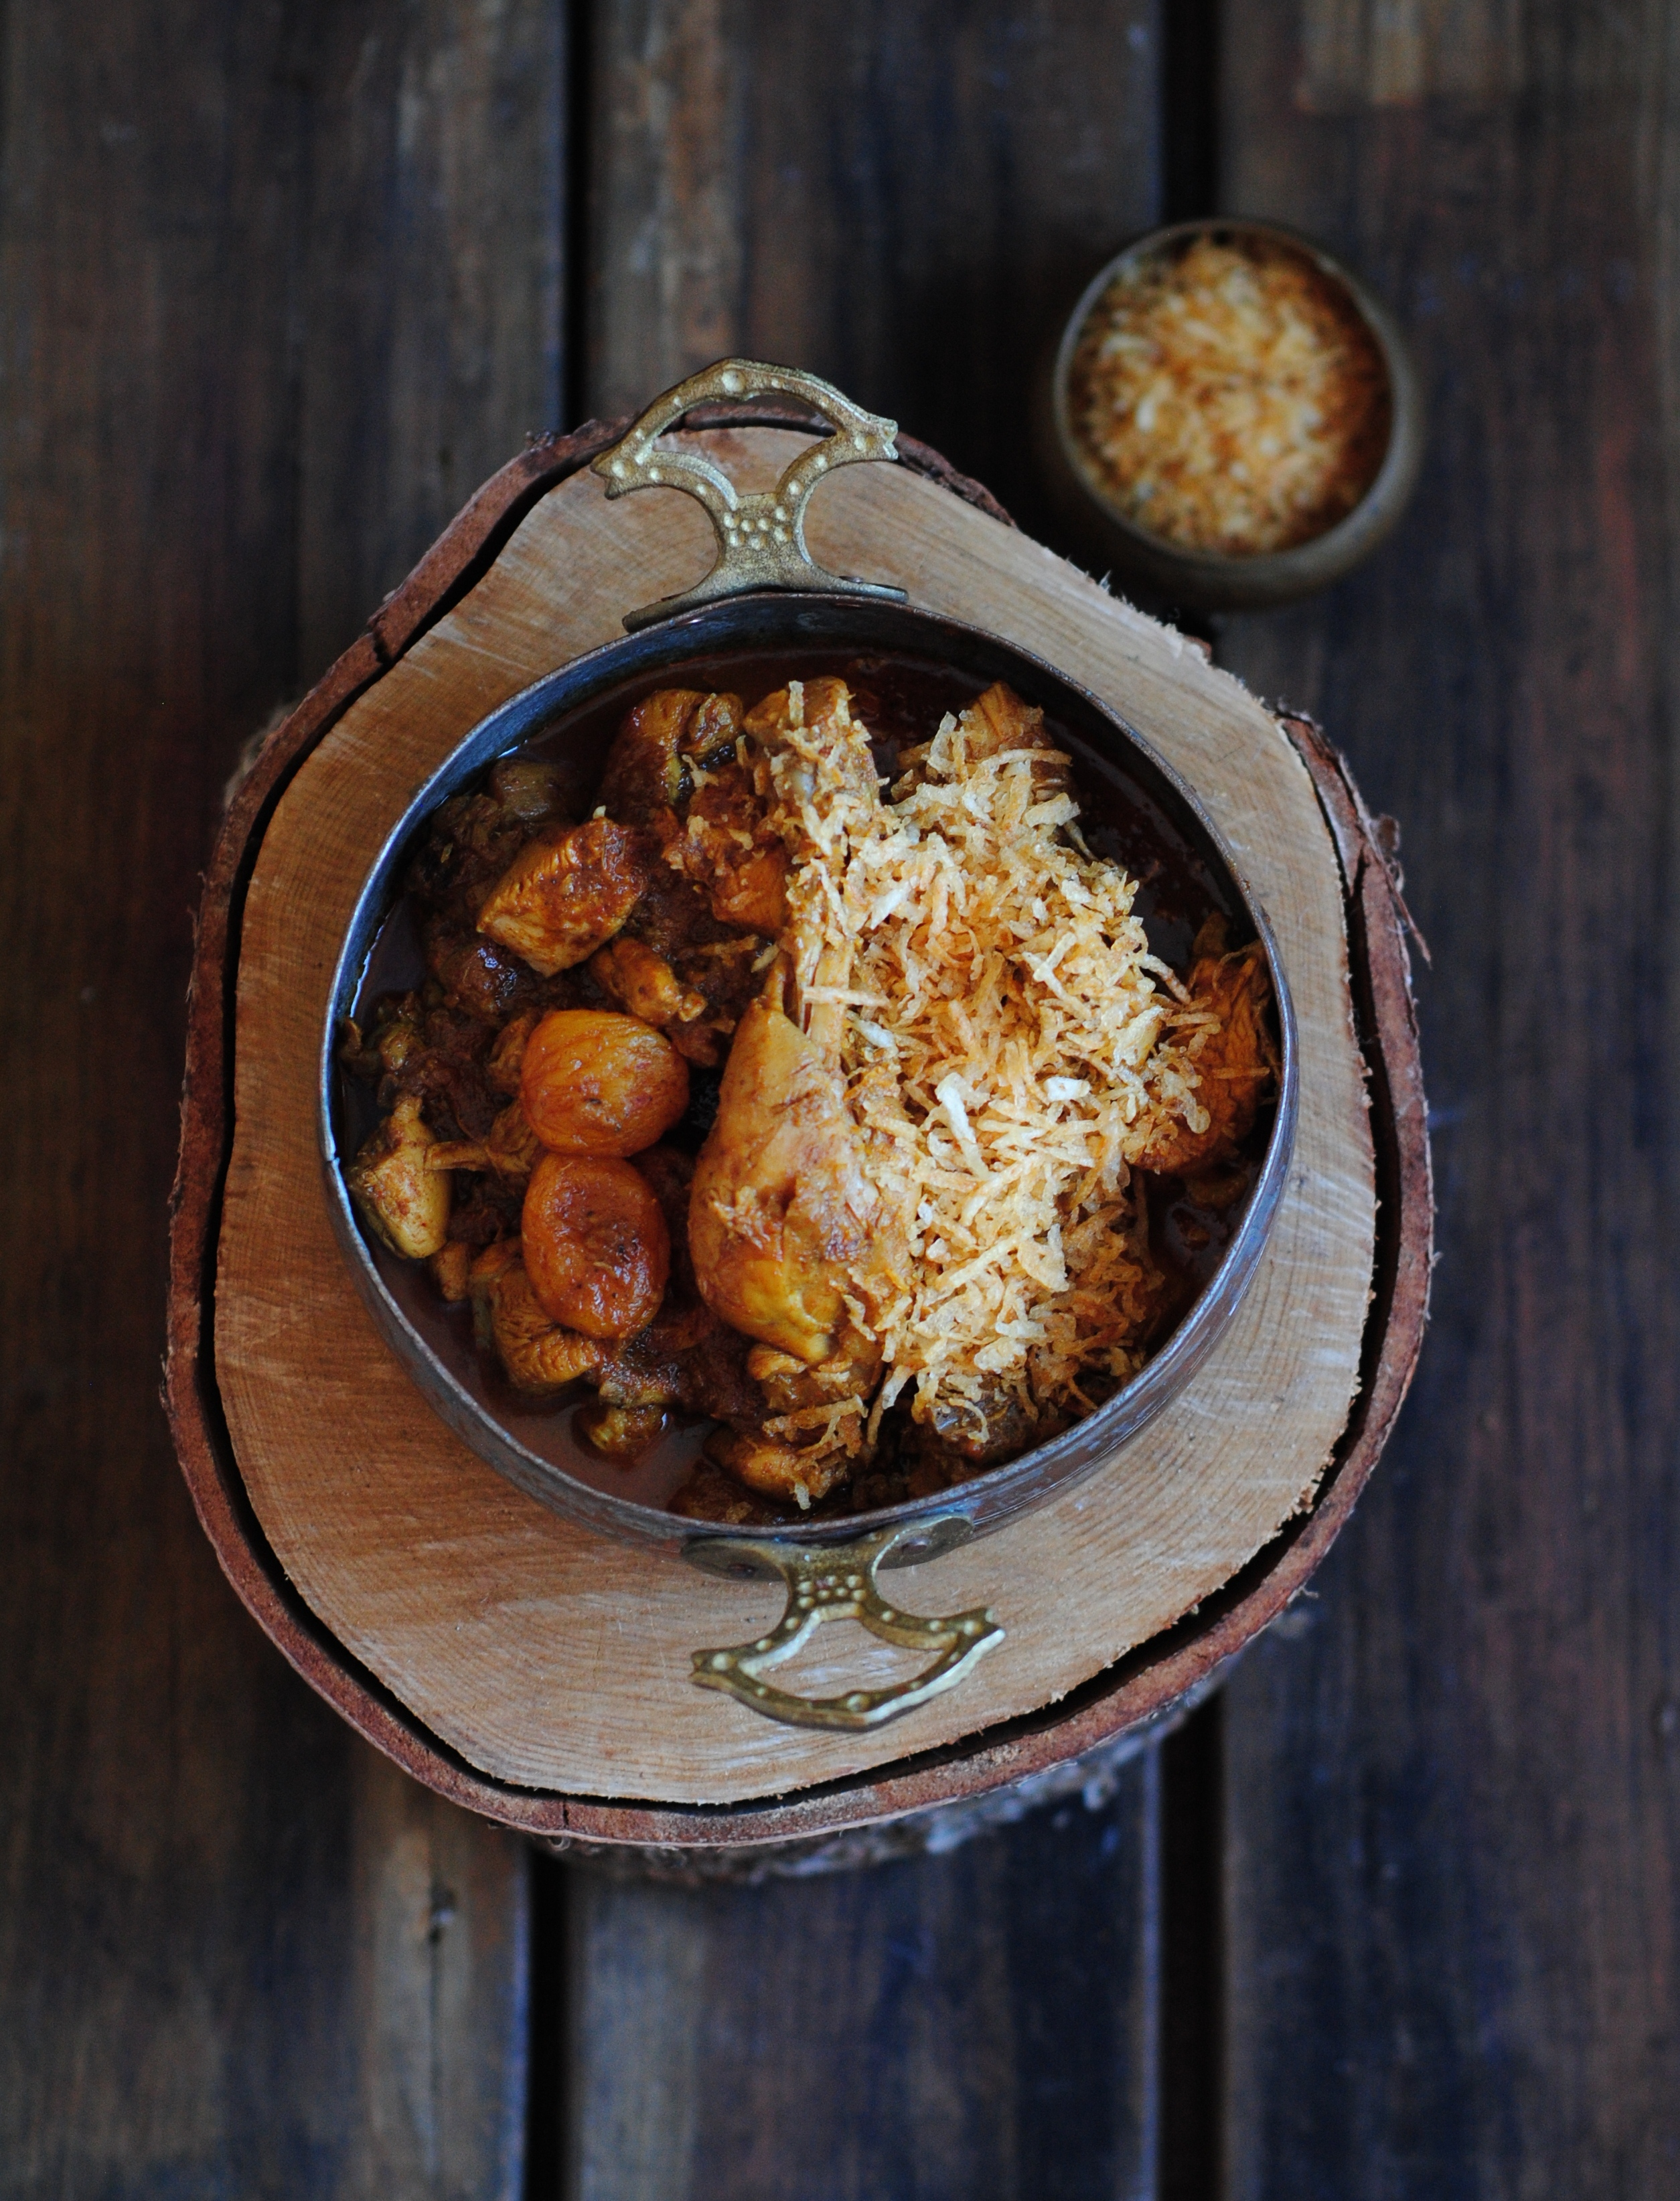 Sali jardaloo murghi/chicken with apricot and fried potatoes and the Kissa-i-Sanjan